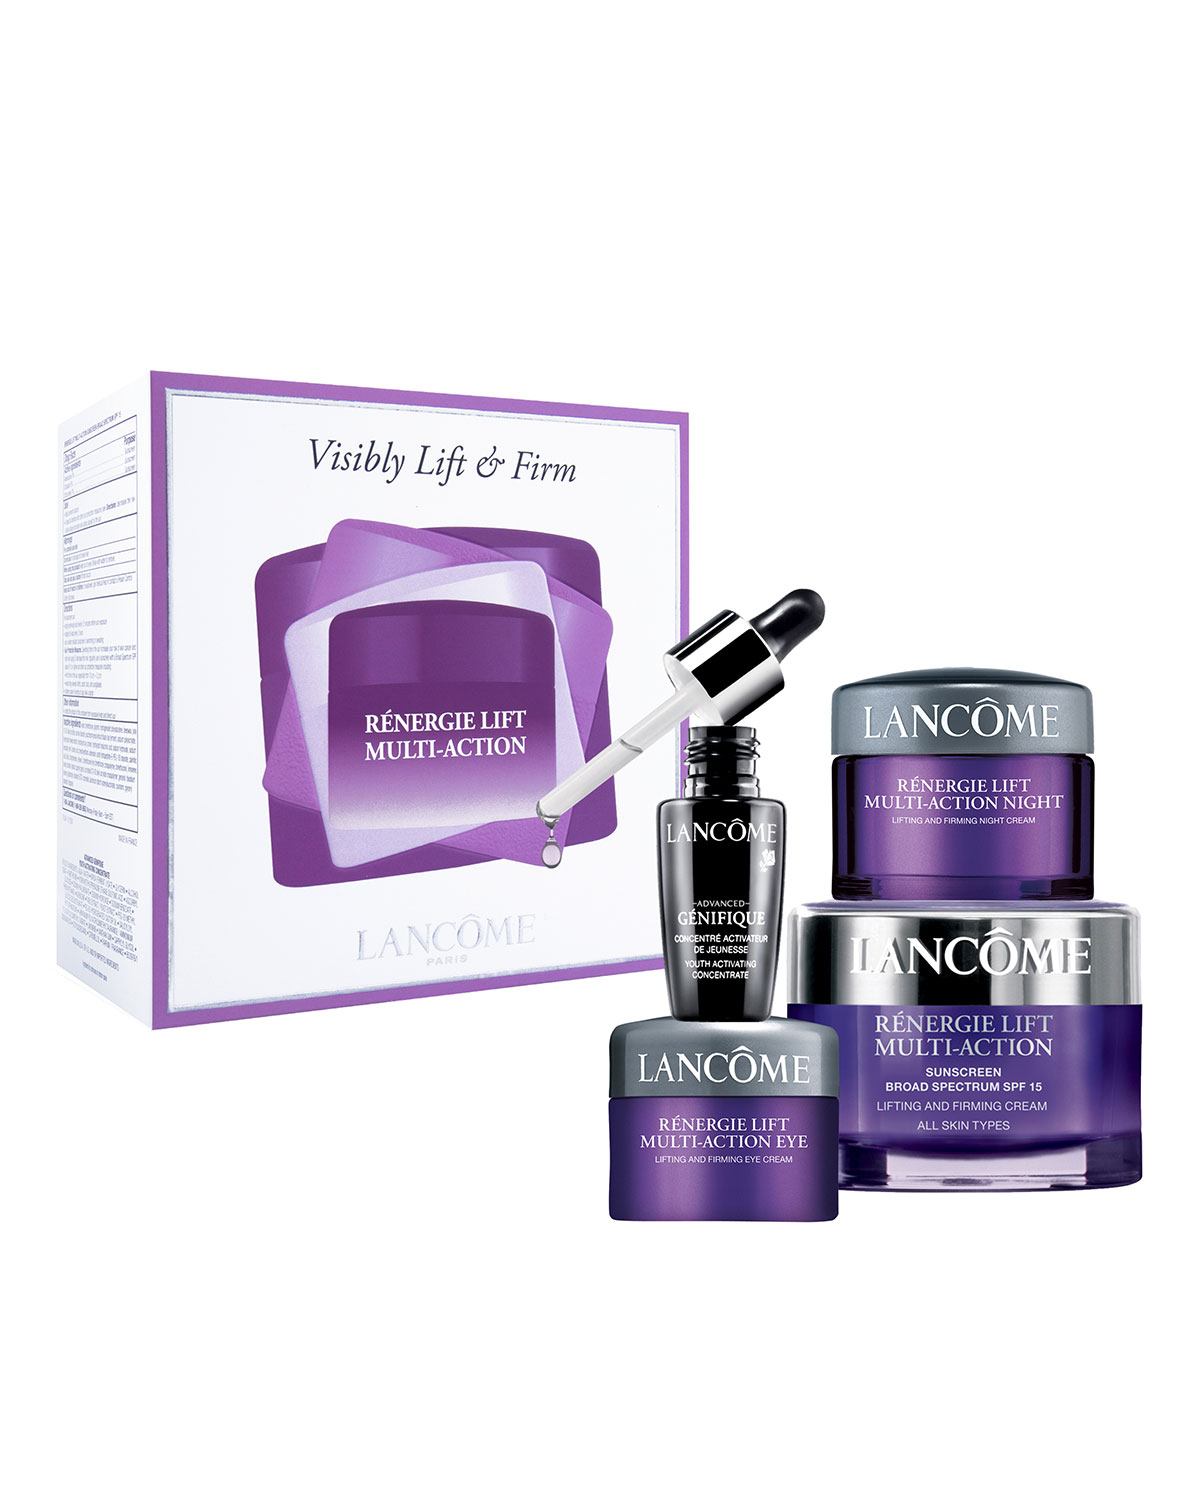 The Rénergie Lift Multi-Action Set to Visibly Lift & Firm